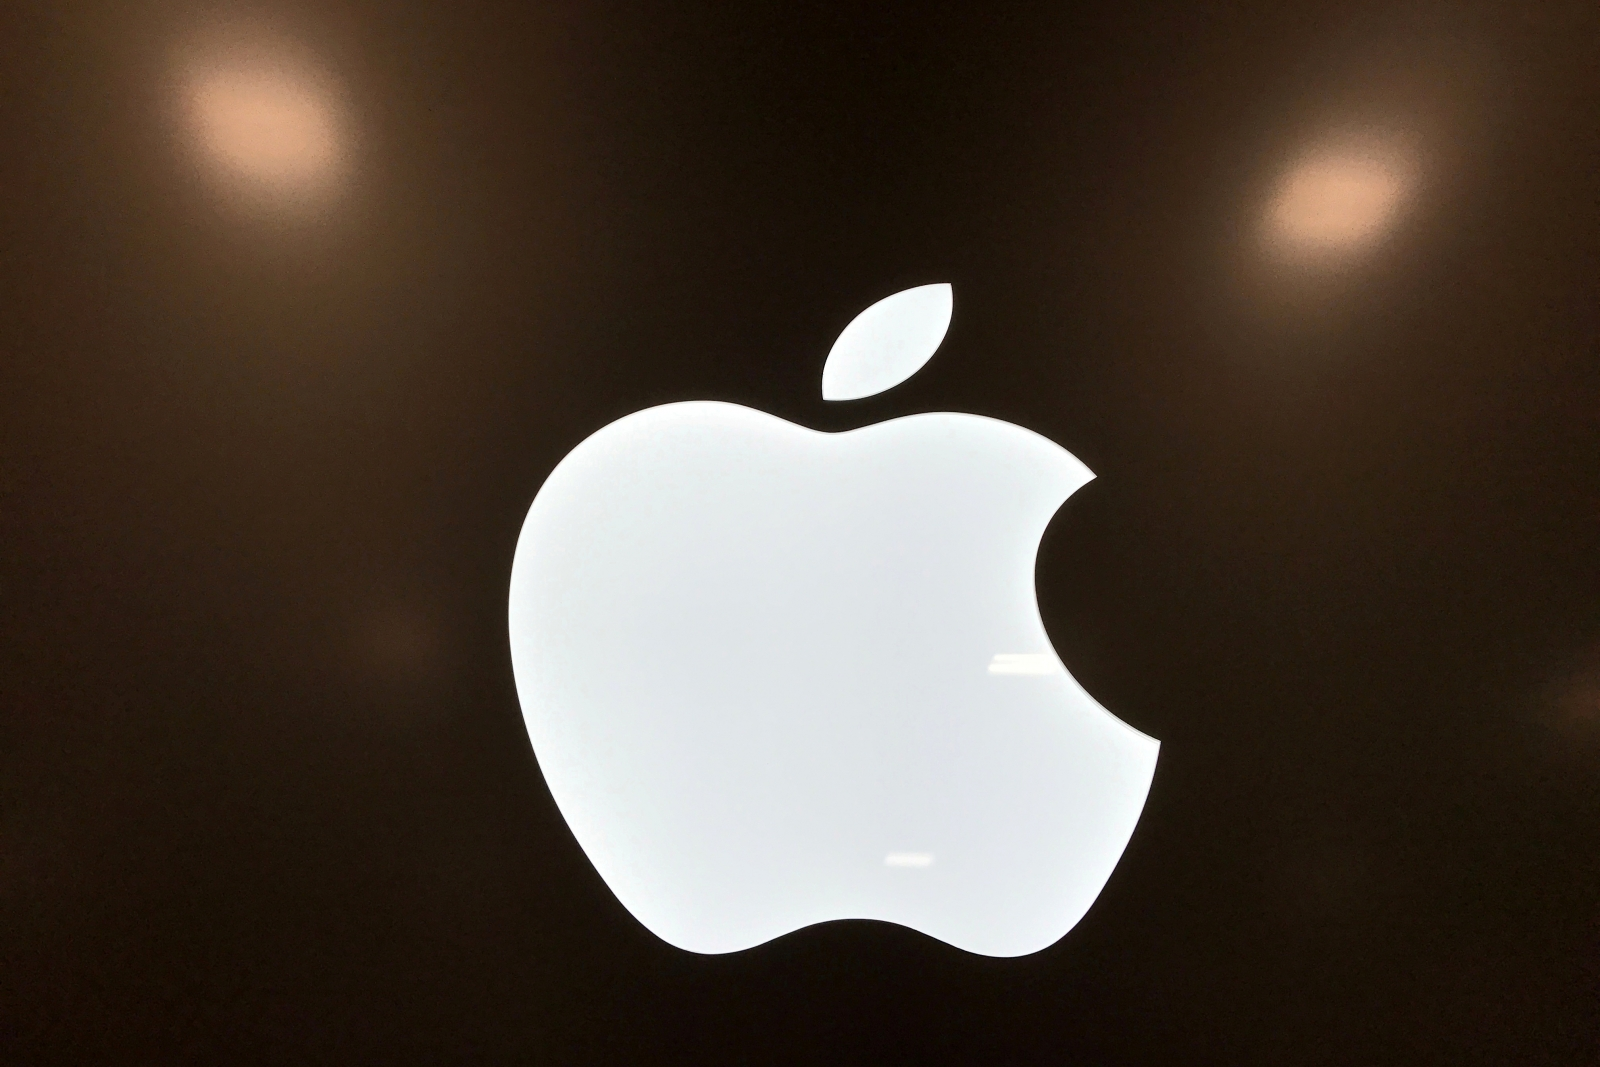 Apple developing graphics chip for iPhone